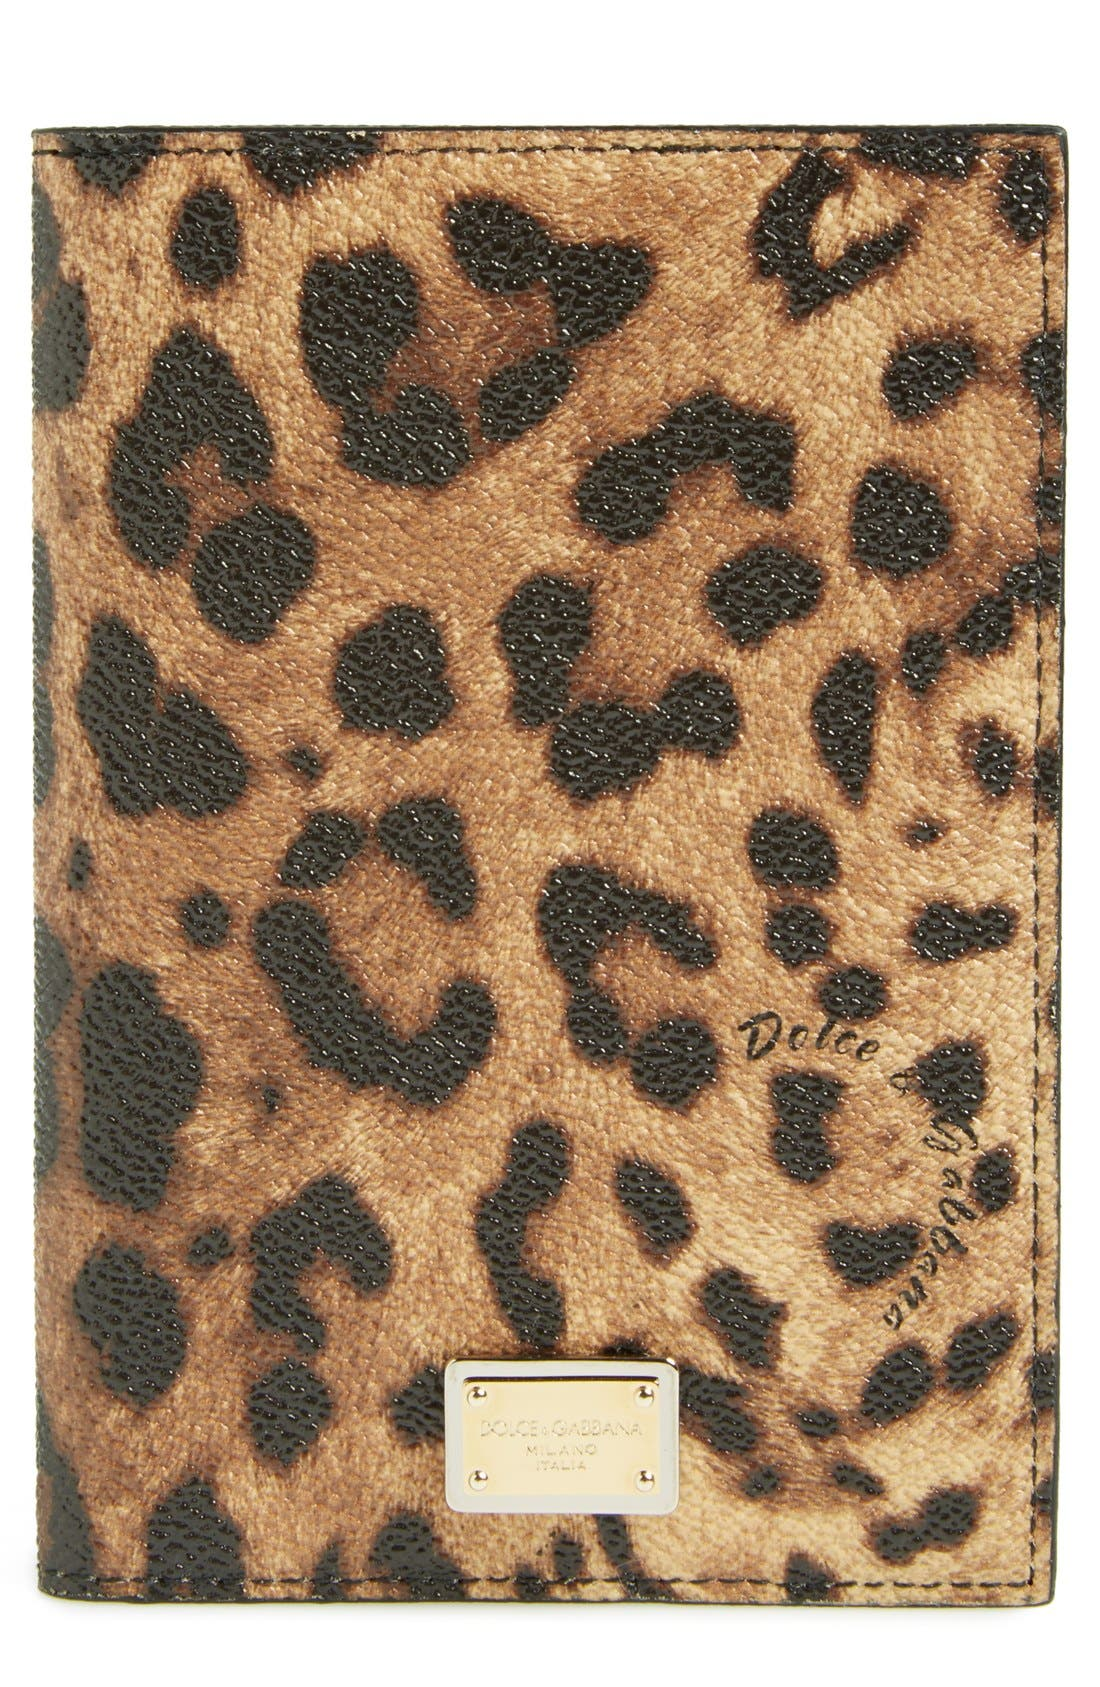 Alternate Image 1 Selected - Dolce&Gabbana Leopard Print Passport Cover